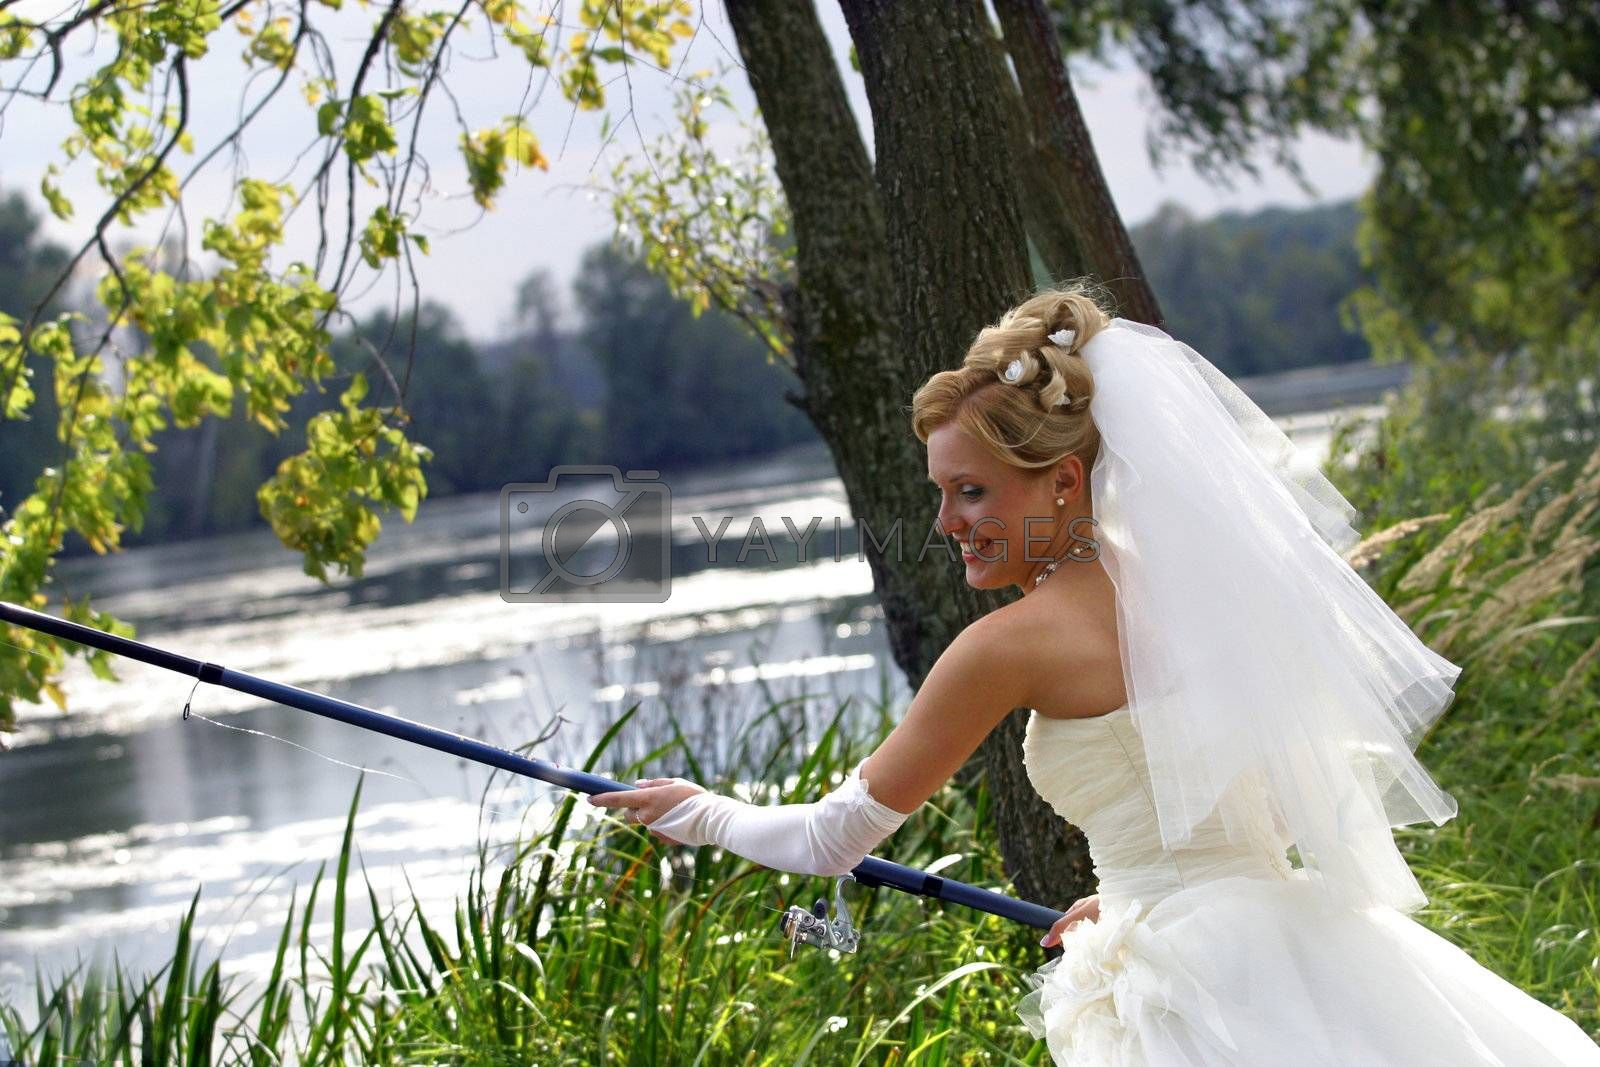 The beautiful bride with fishing tackle